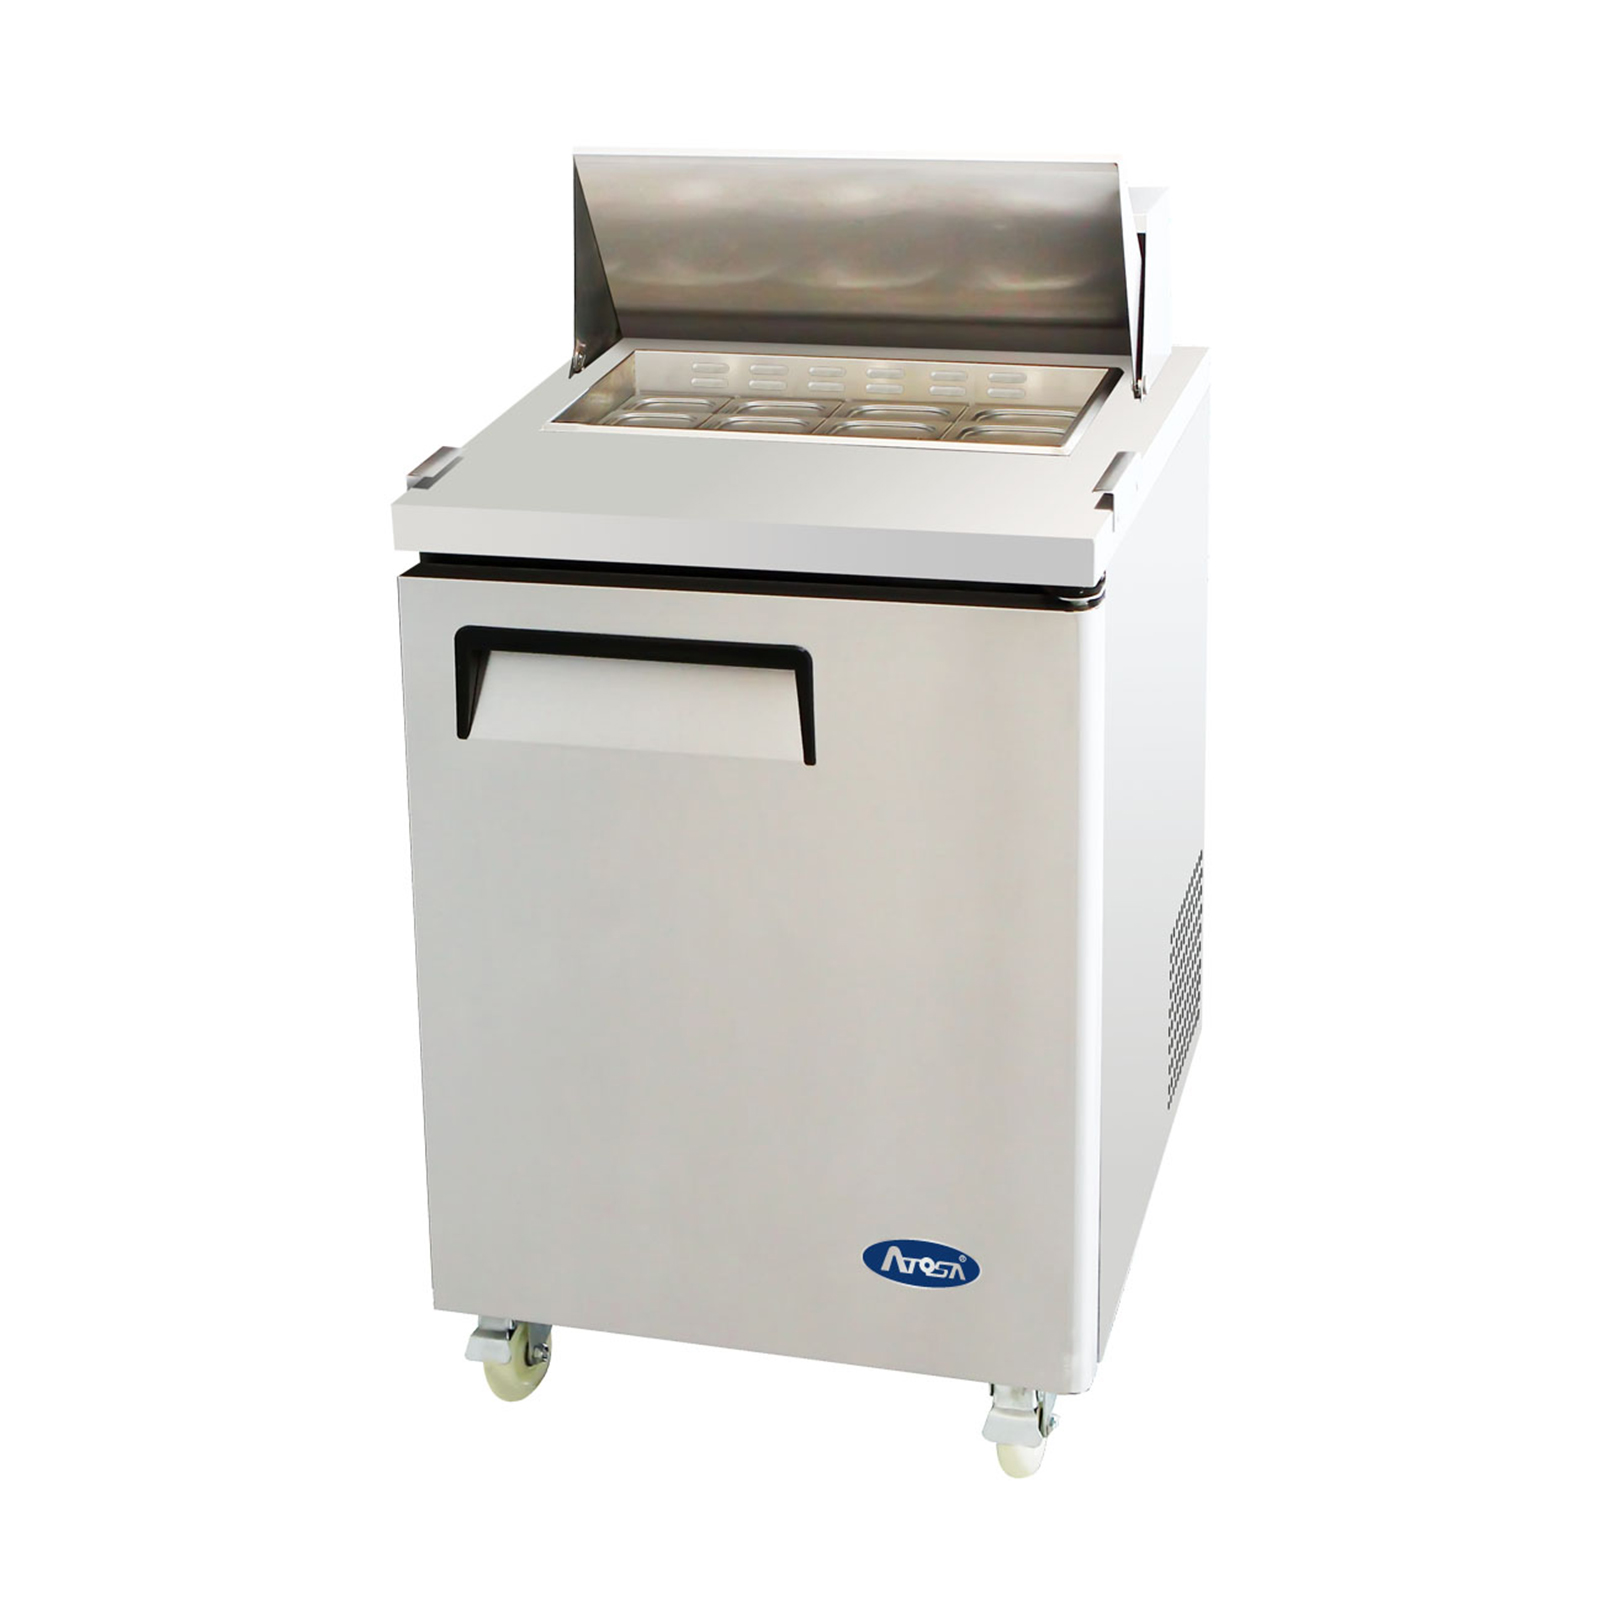 Atosa USA MSF8301GR refrigerated counter, sandwich / salad unit